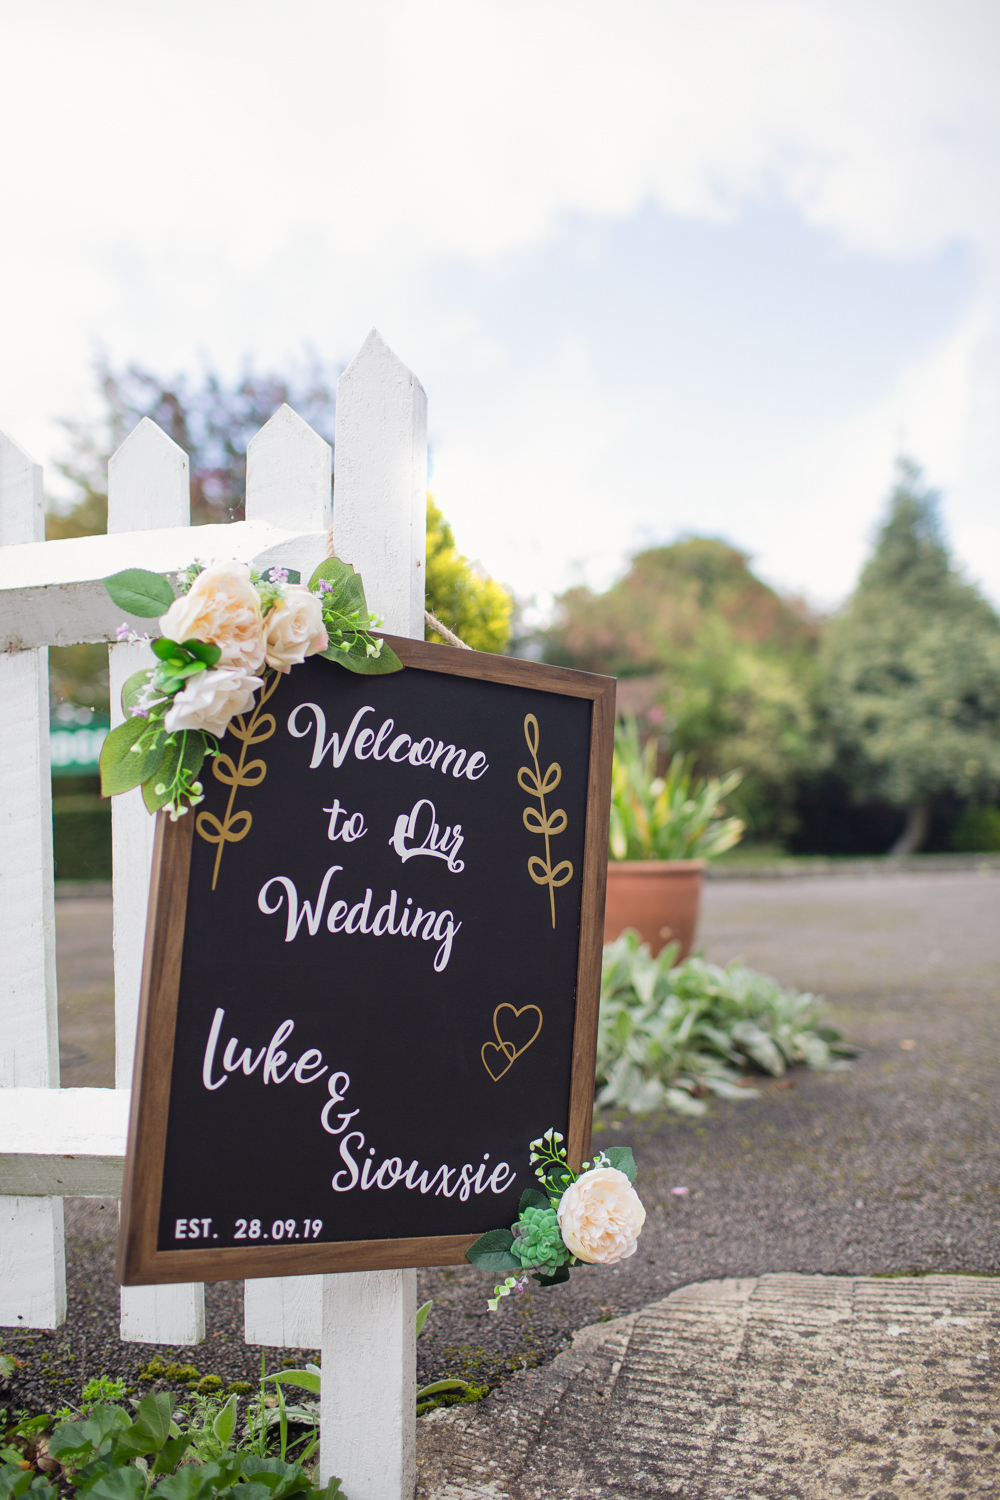 Welcome Sign Signs Signage Chalk Board Railway Station Wedding Cotton Candy Weddings